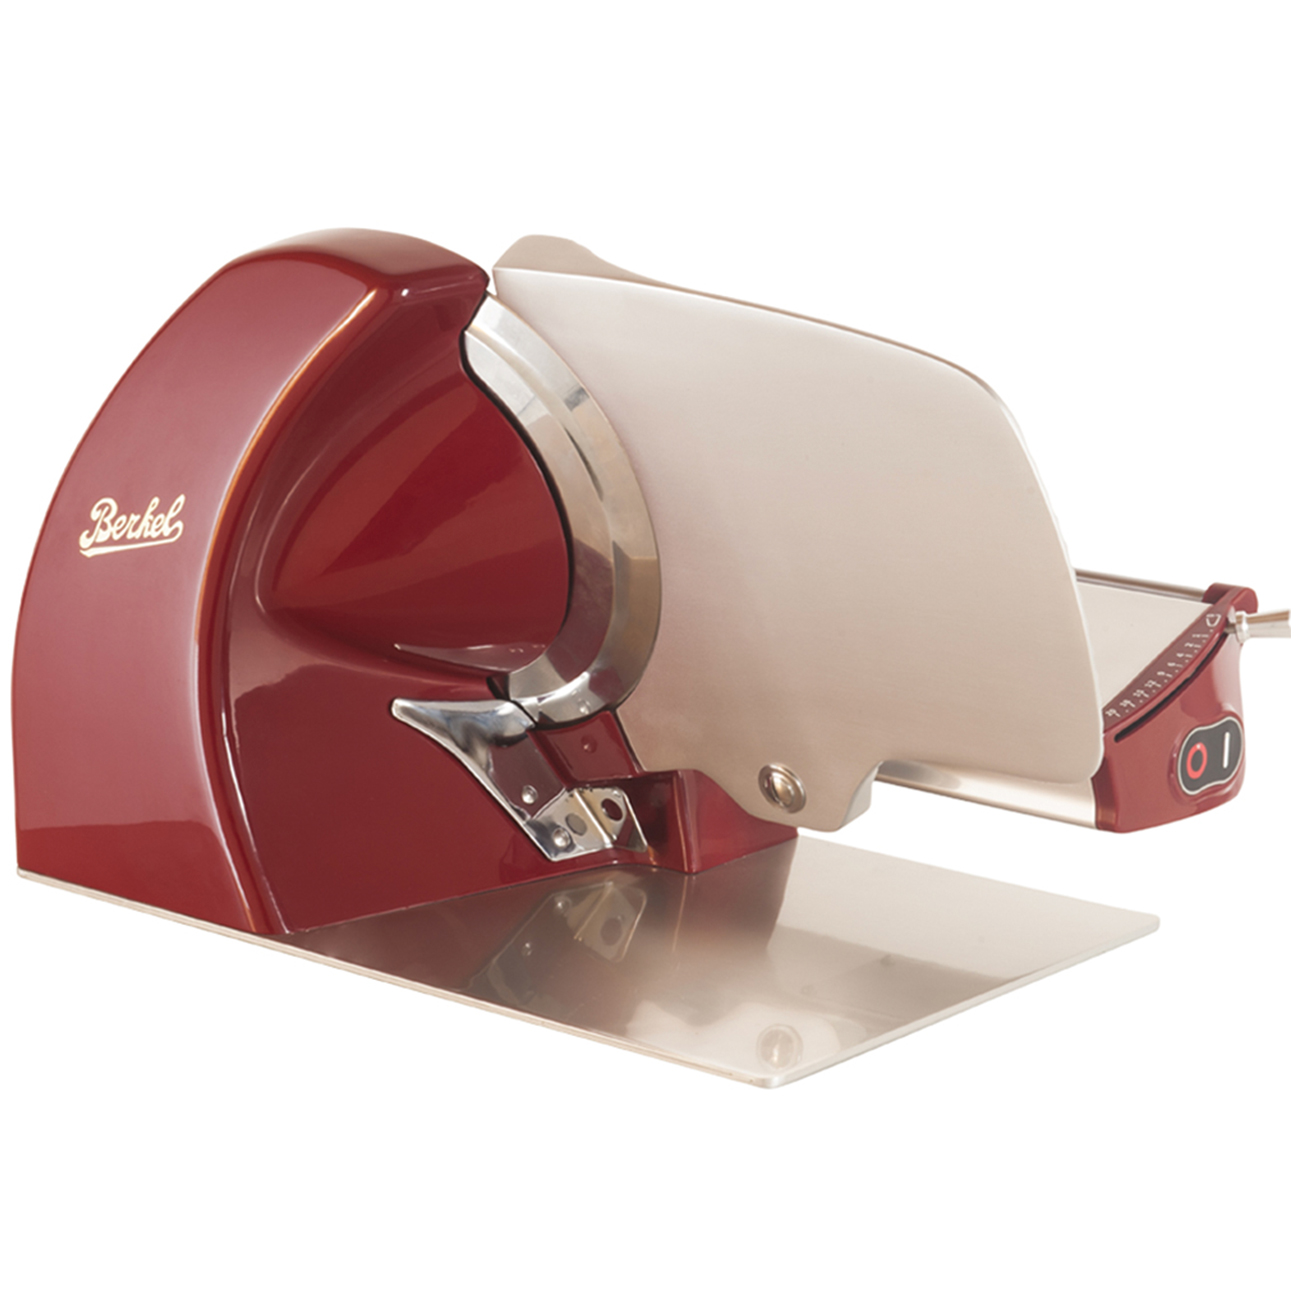 Home Line 200 Slicers